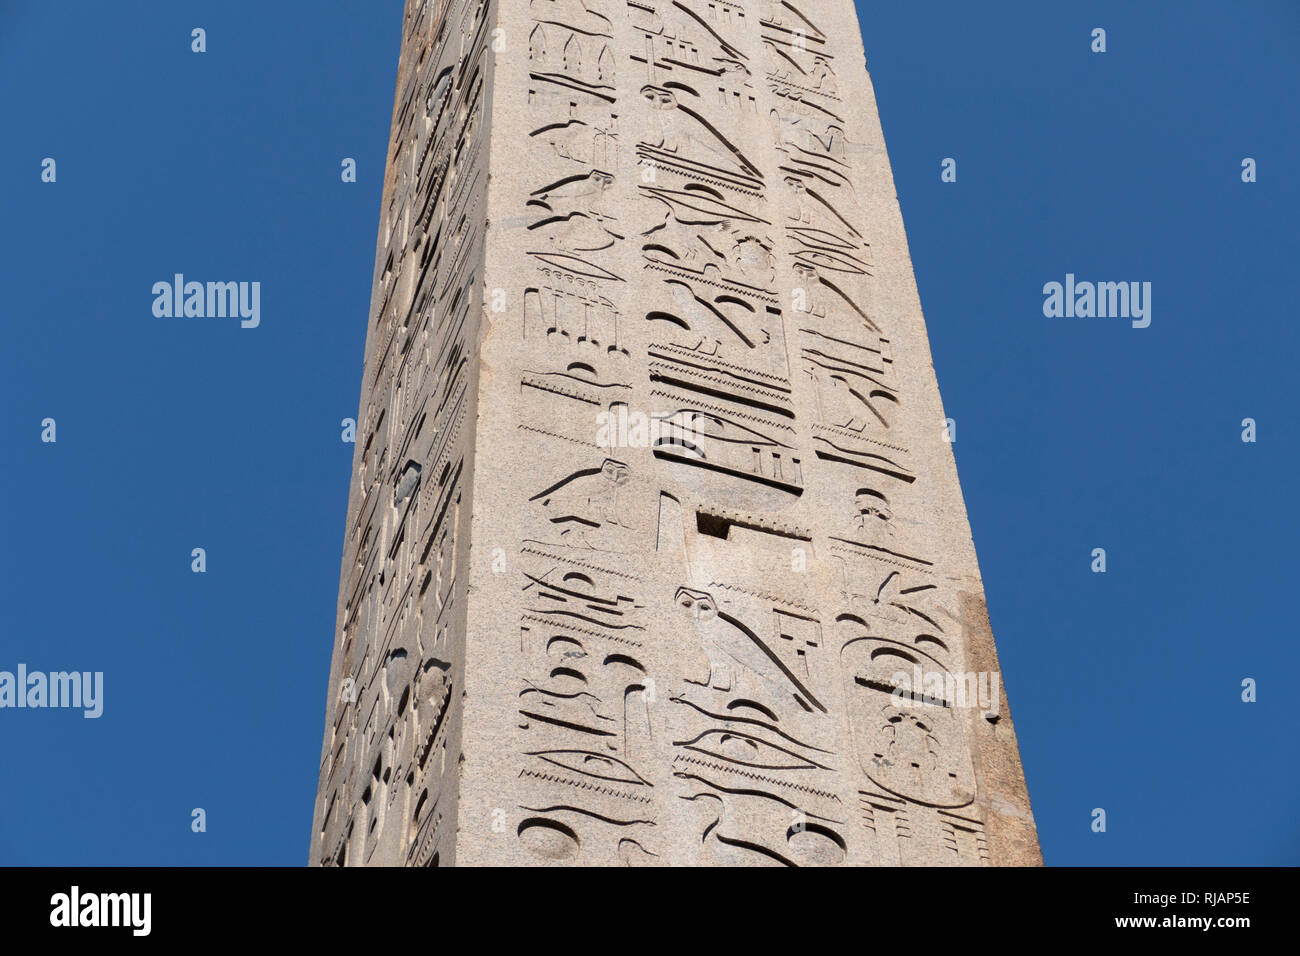 Lateran Obelisk is the largest standing ancient Egyptian obelisk in the world, and it is also the tallest obelisk in Italy, Rome, Der Lateranische Obe Stock Photo